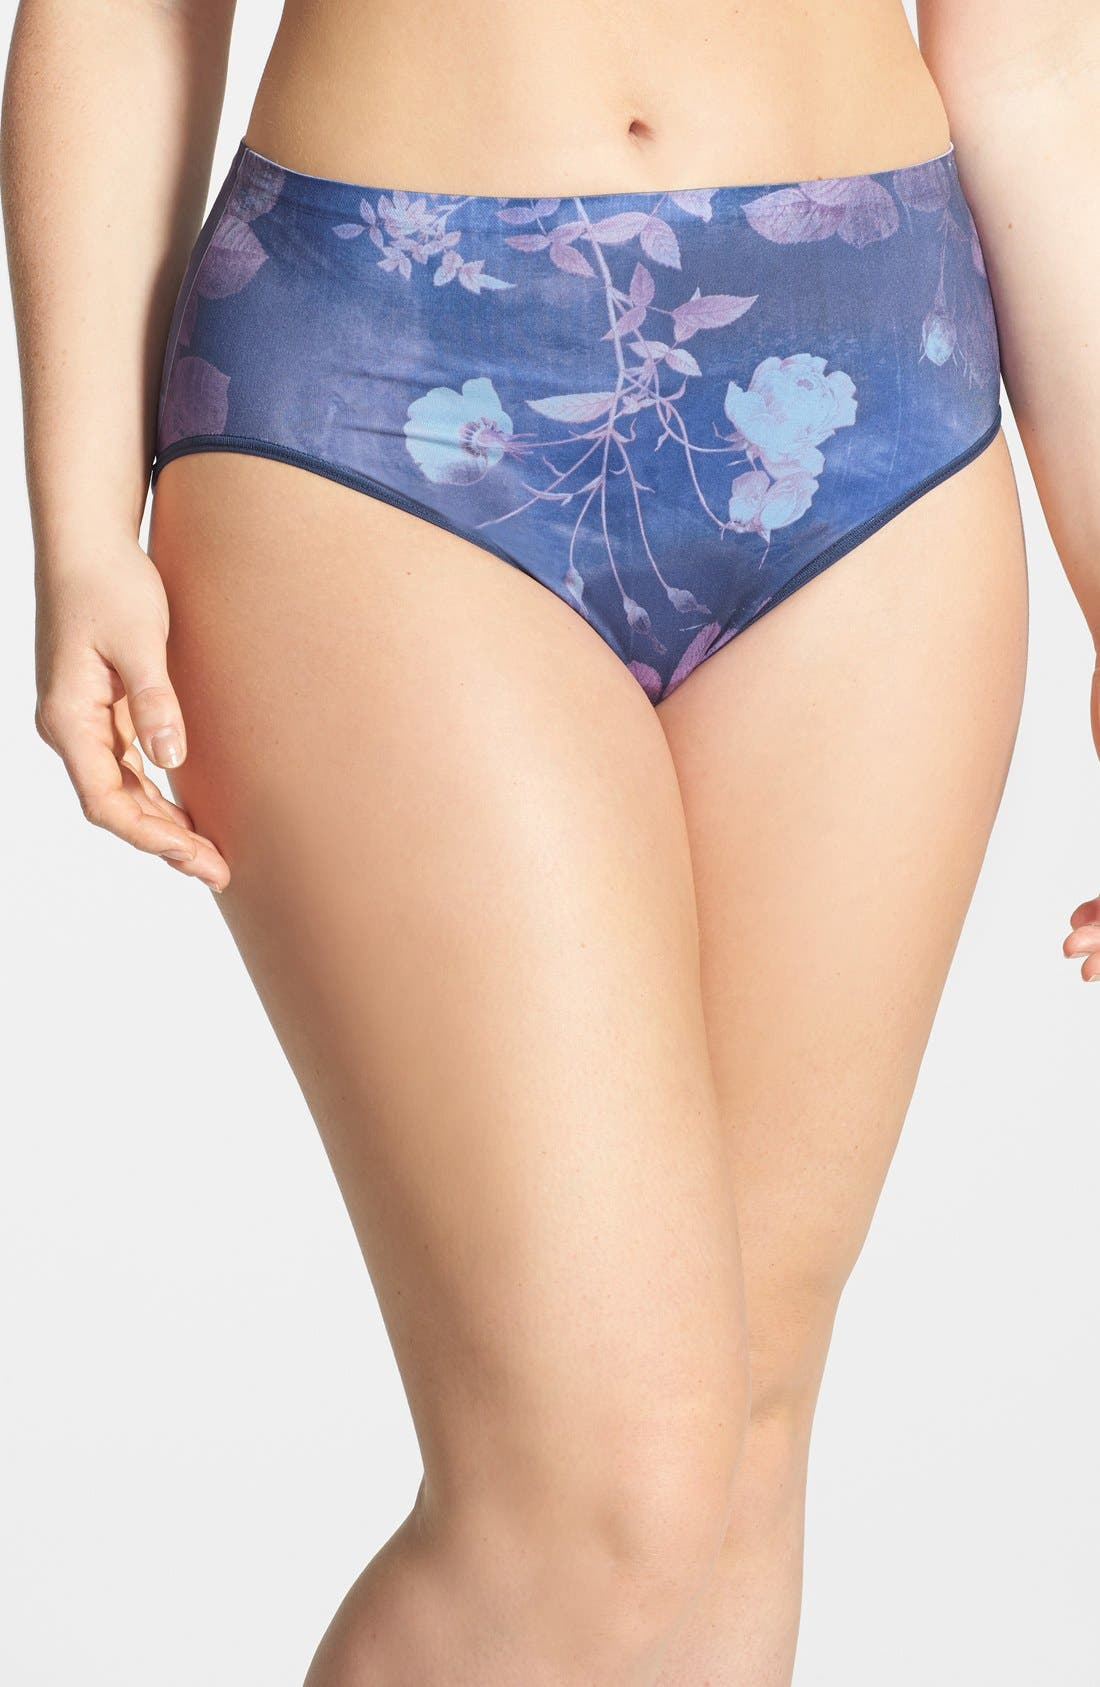 Main Image - Shimera Print Seamless Full Cut Briefs (Plus Size) (3 for $30)